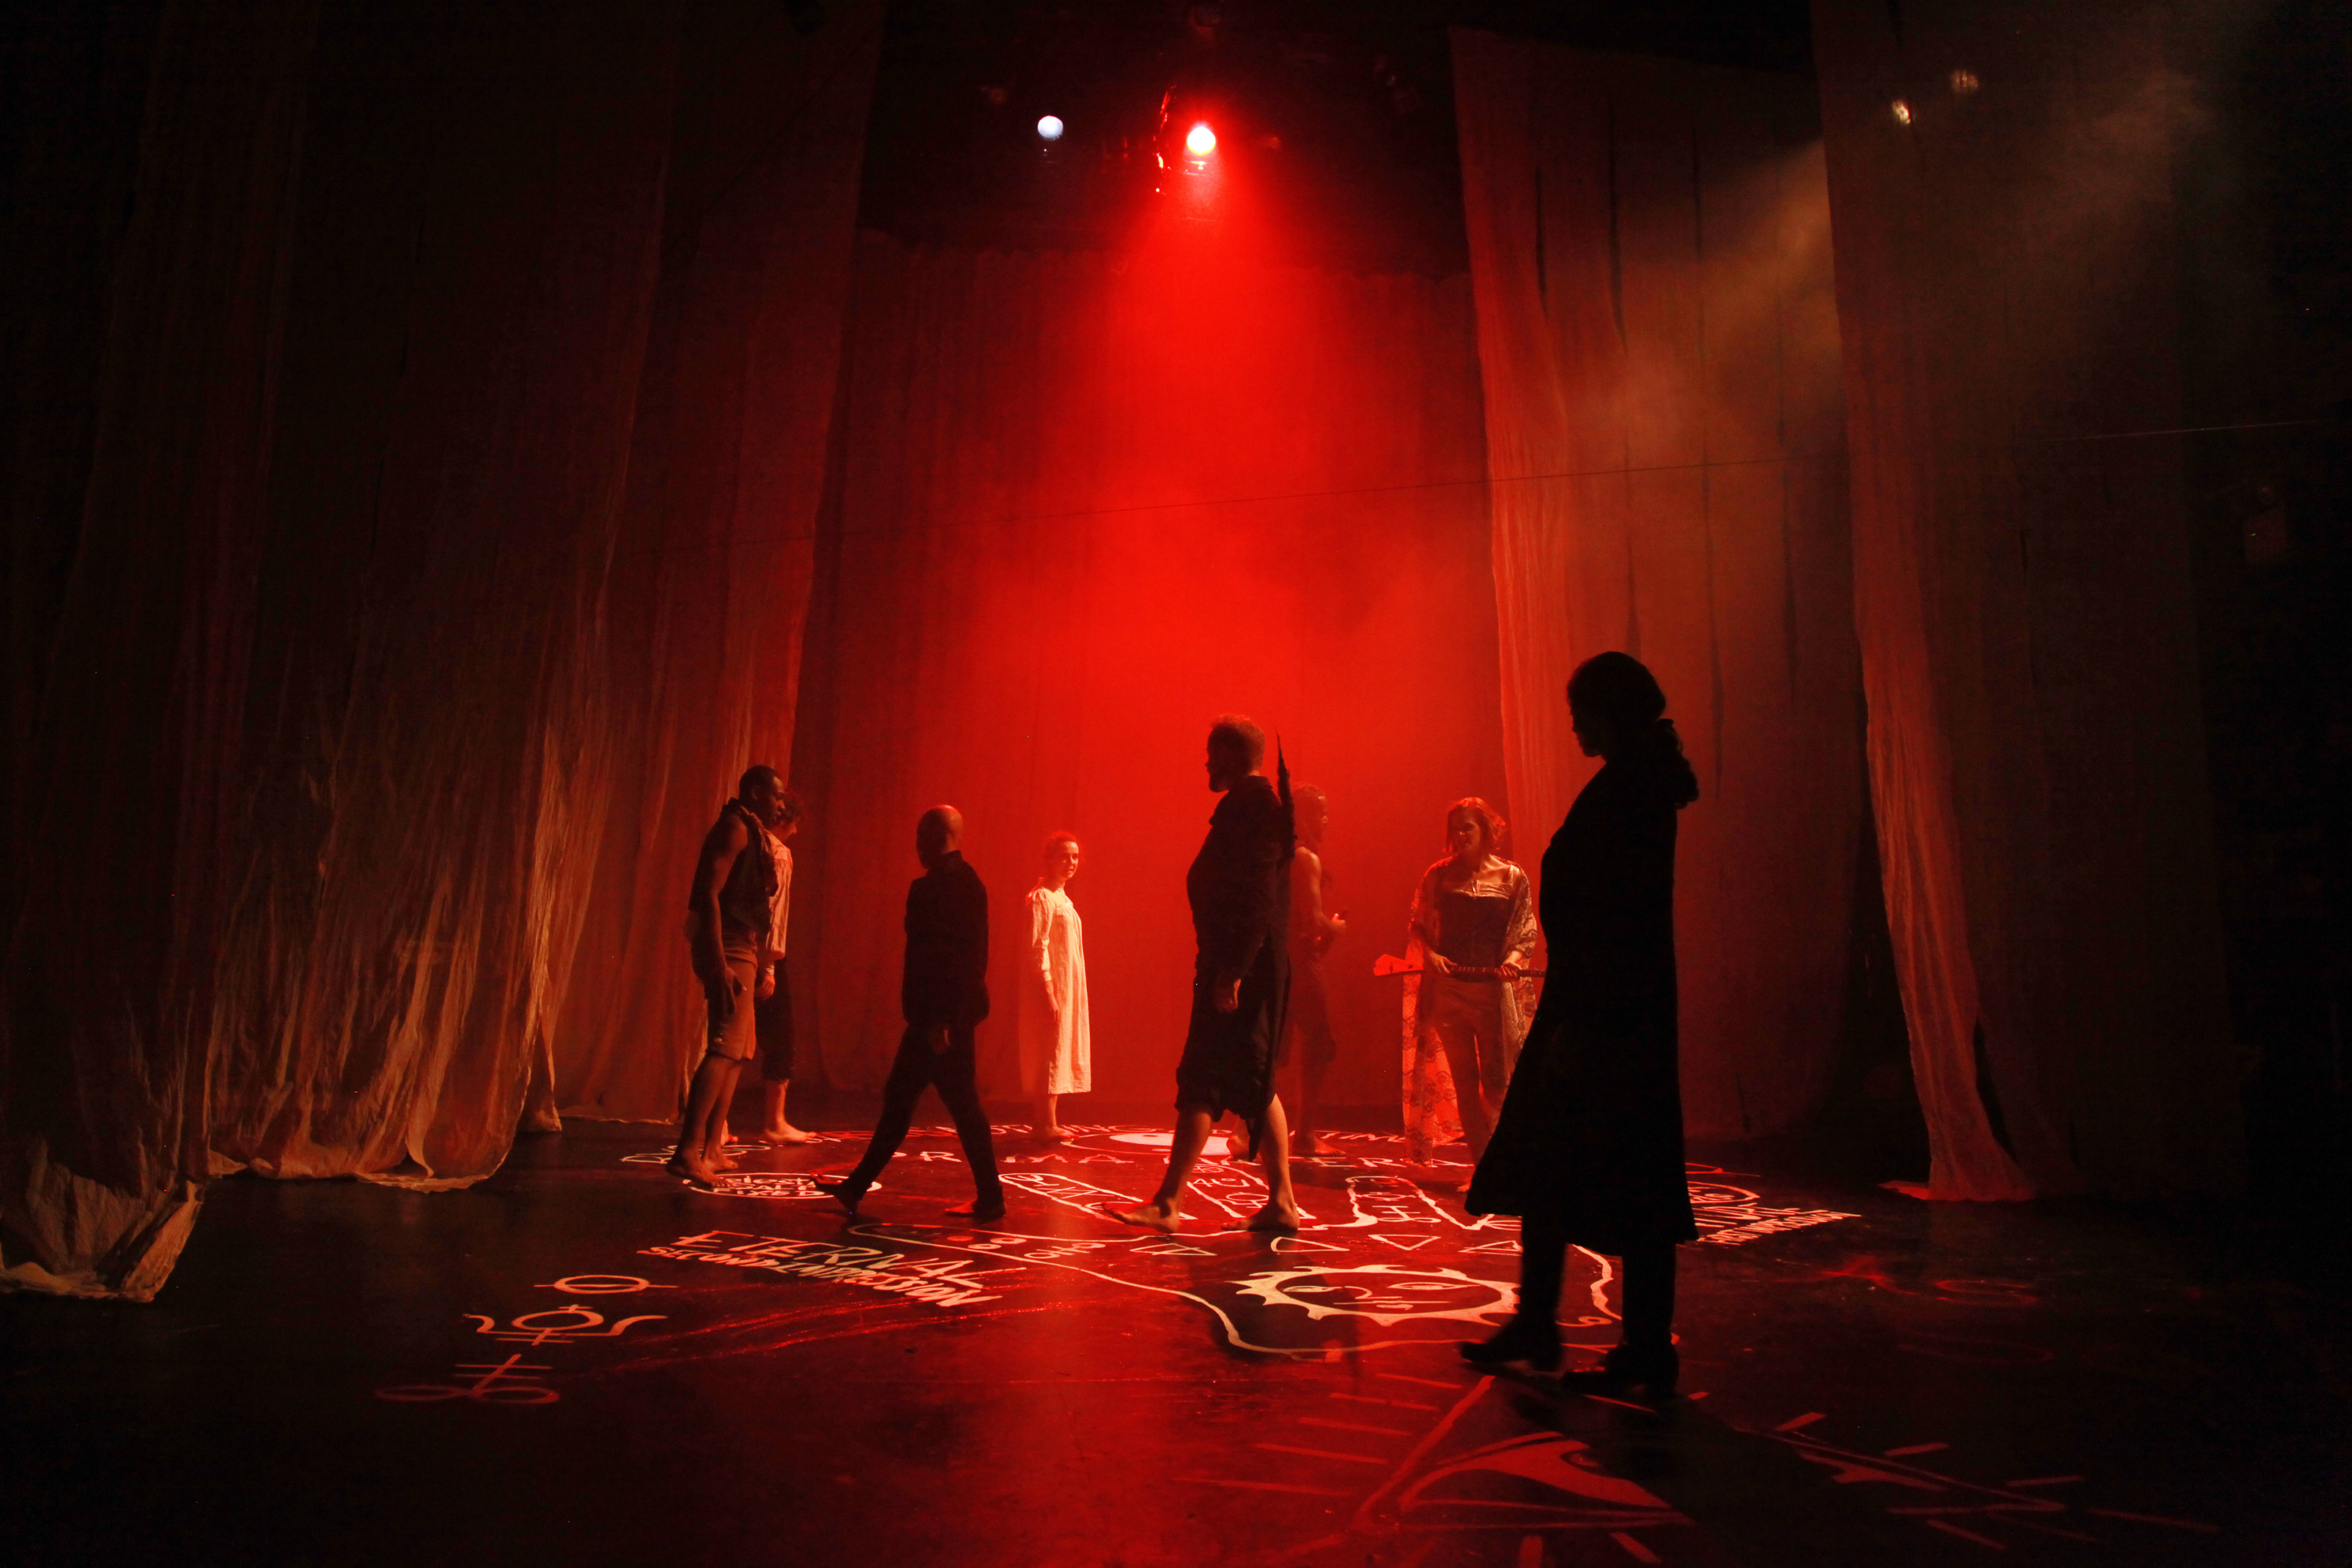 group of performers lit by red light